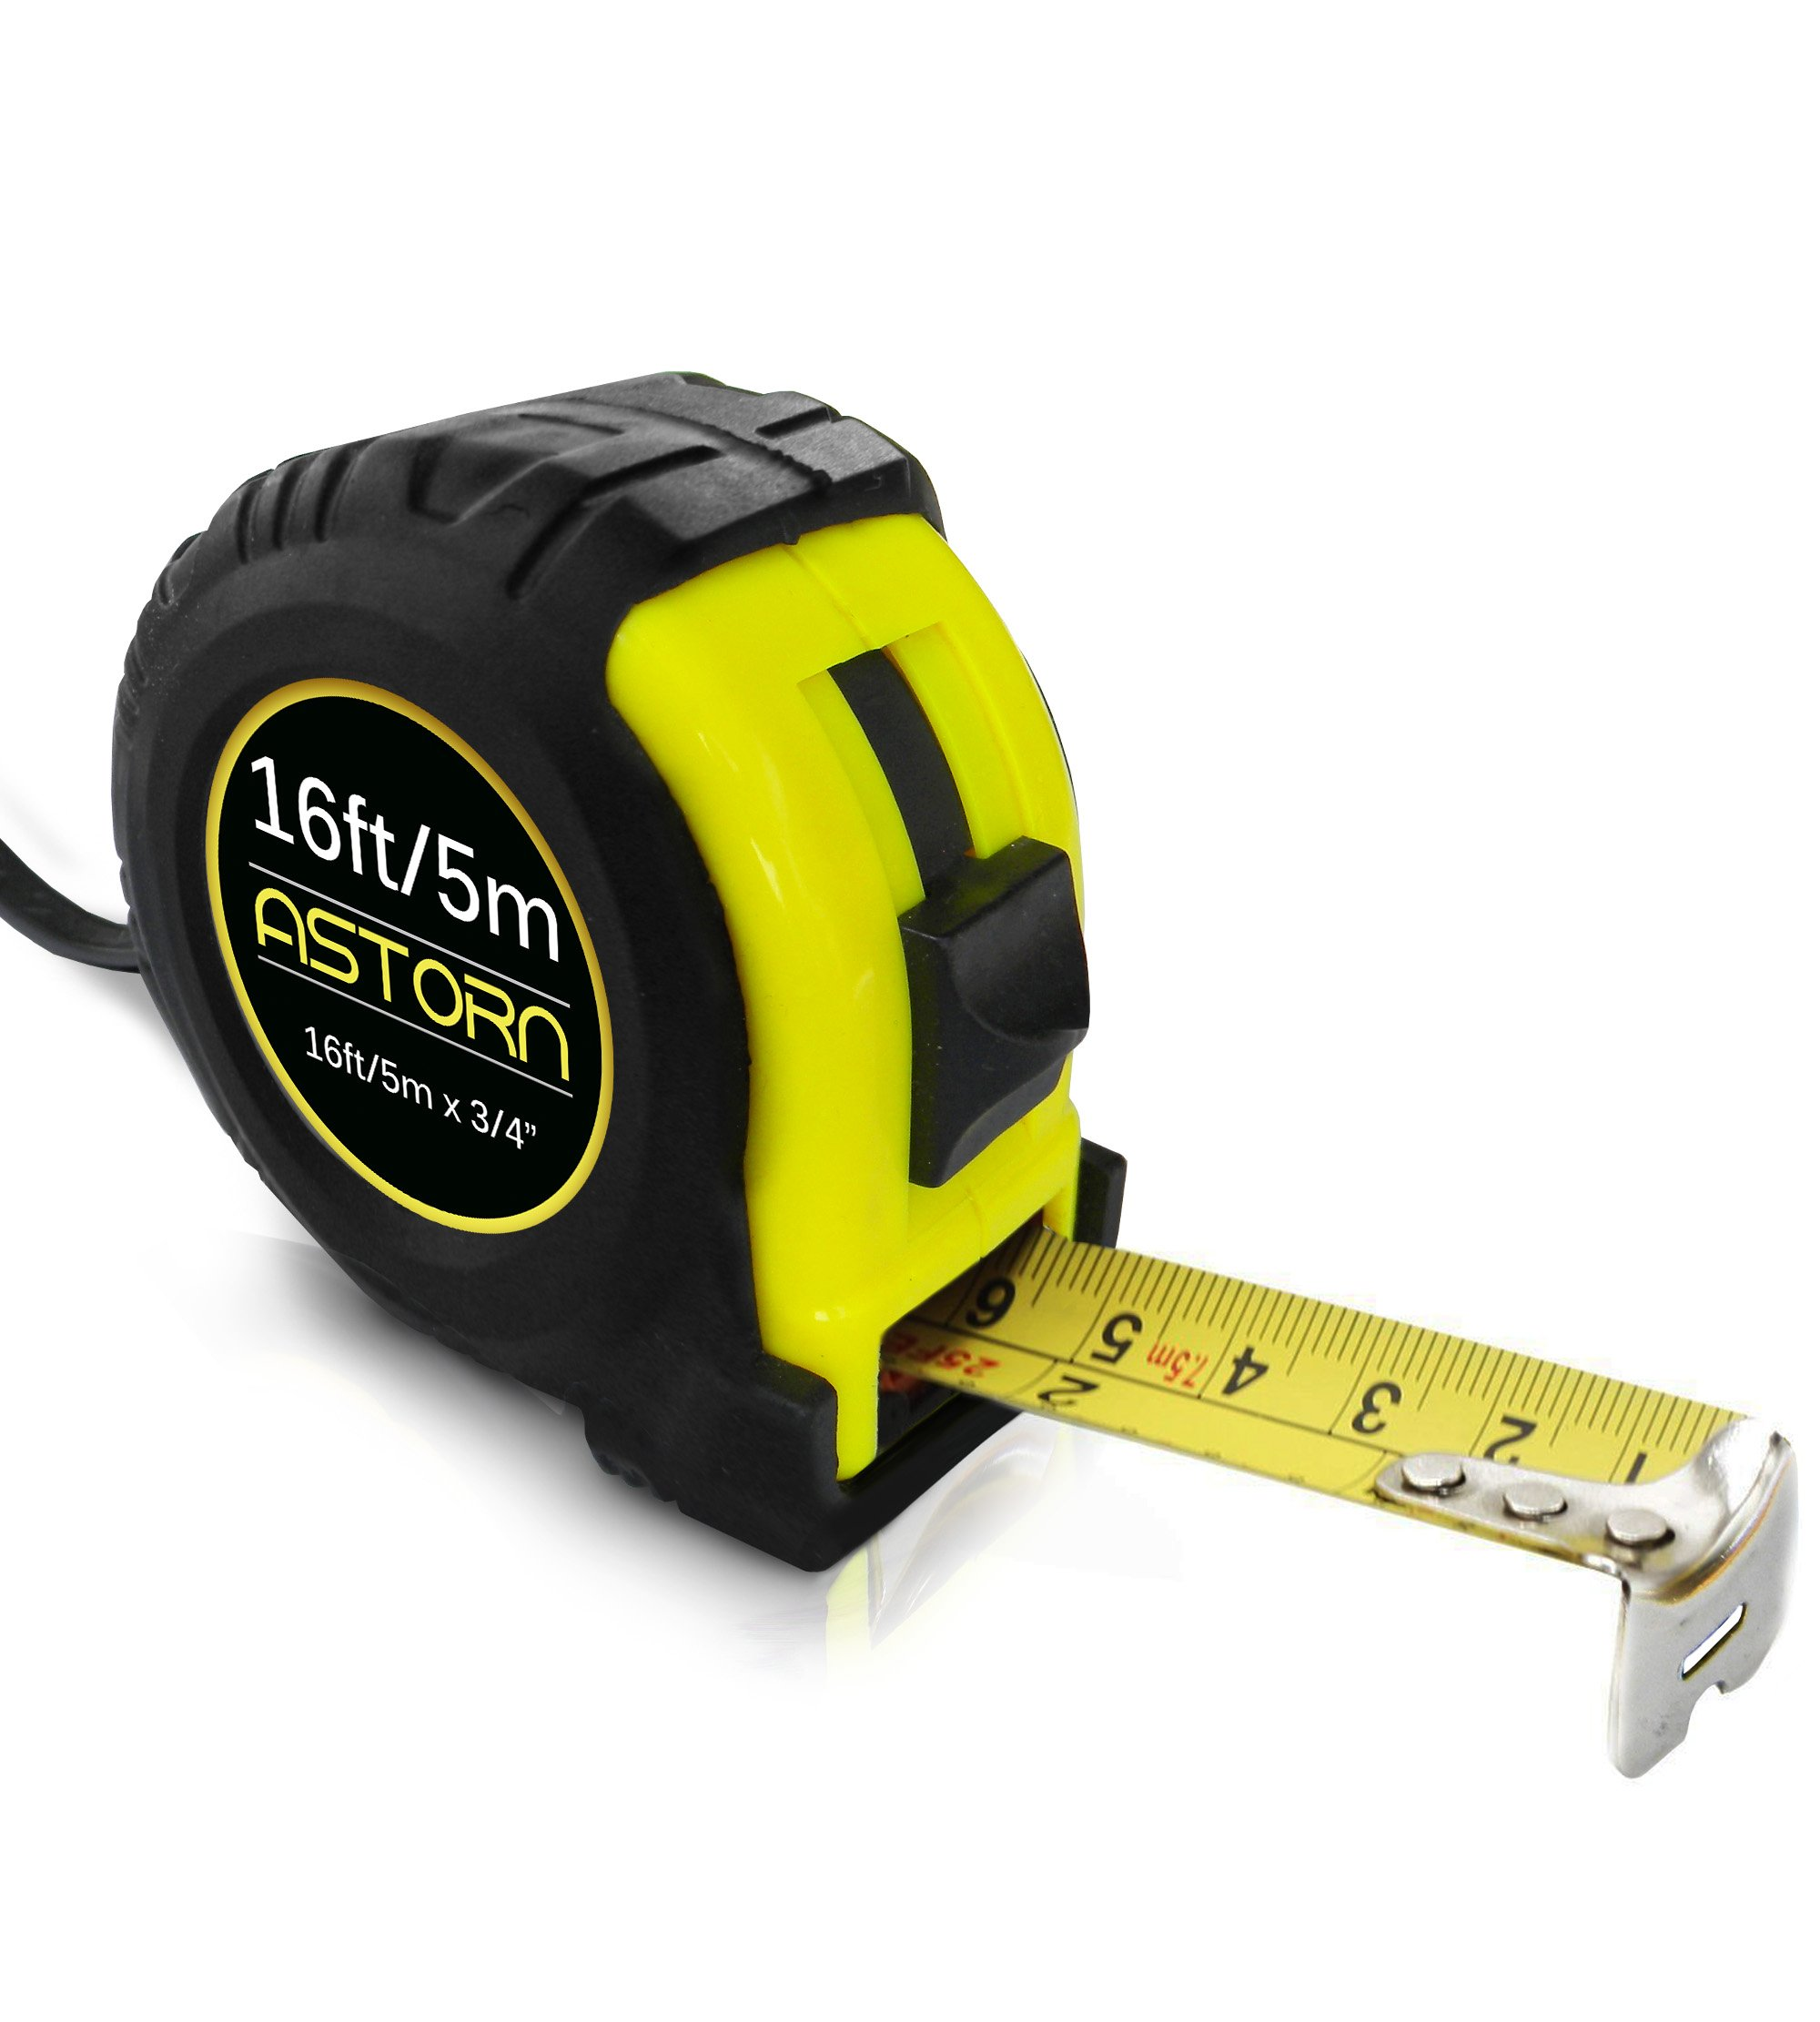 Measuring Tape For Contractors & DIY | Tape Measurer (Cinta Metrica) | Metric & Inches Measuring Tape for Construction | Heavy Duty Tape Measure with Smooth Sliding Nylon Coated Ruler by Astorn by Astorn (Image #1)